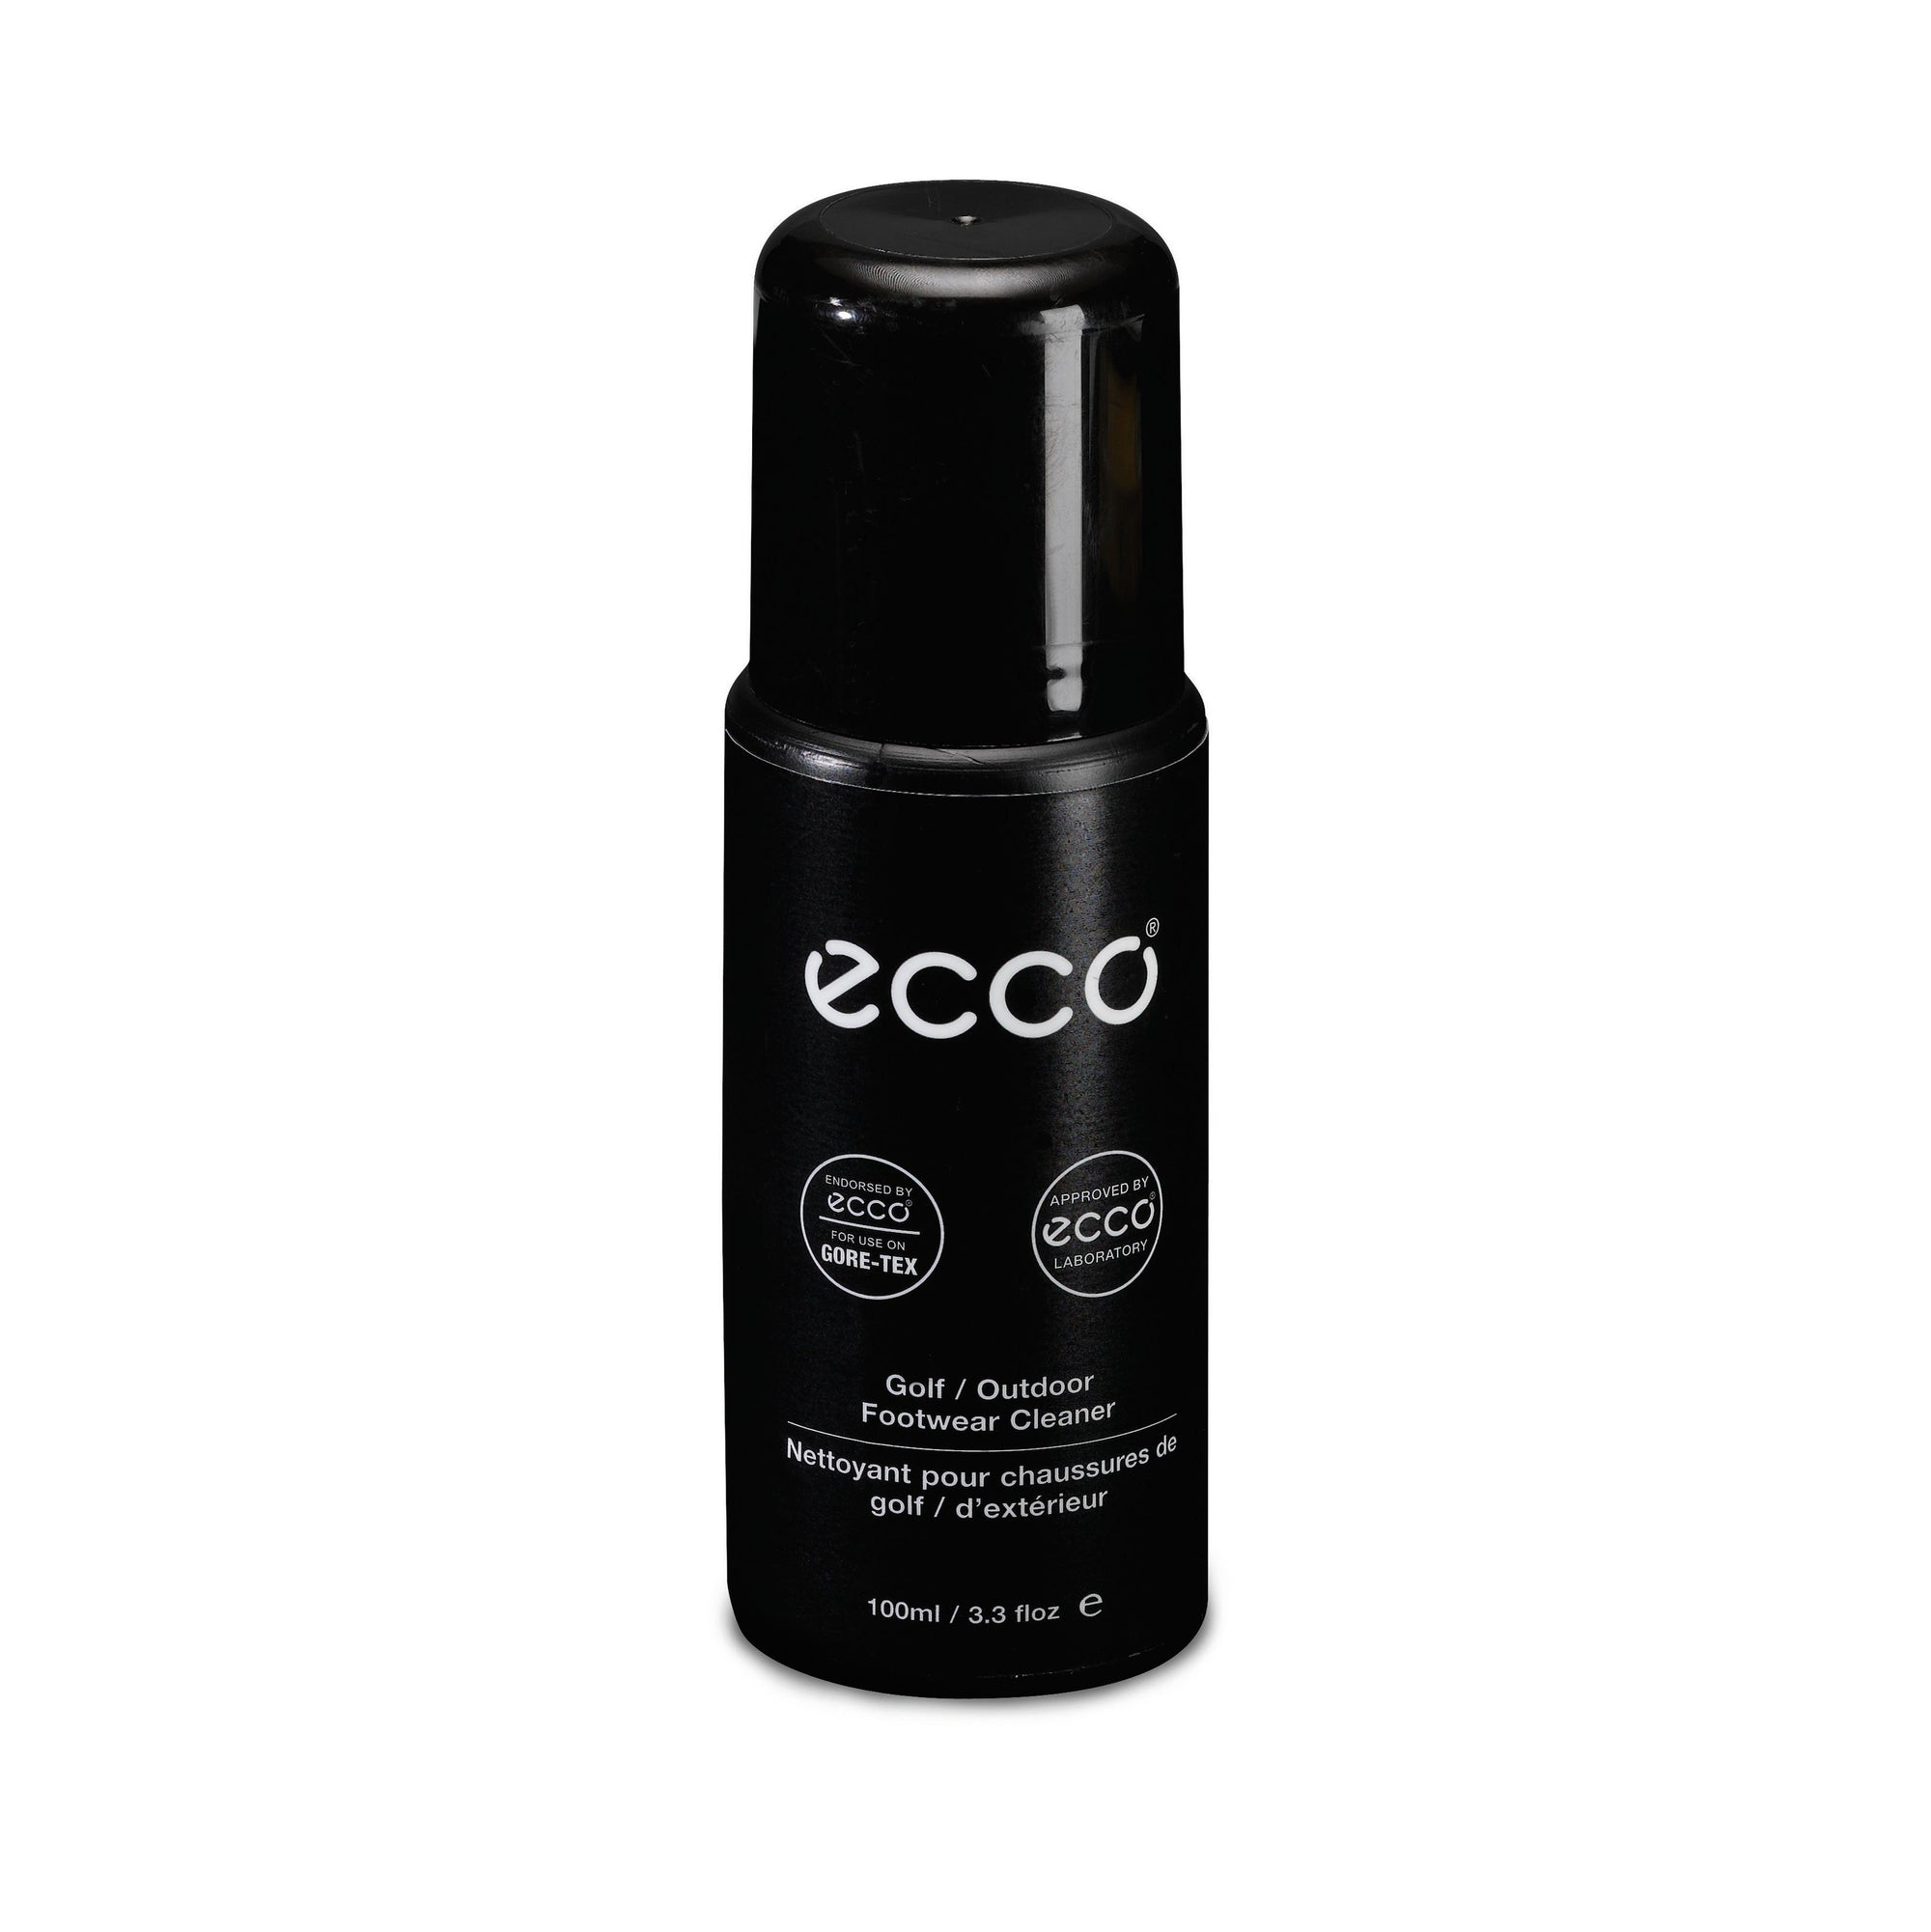 Golf / Outdoor Footwear Cleaner Accessories ECCO